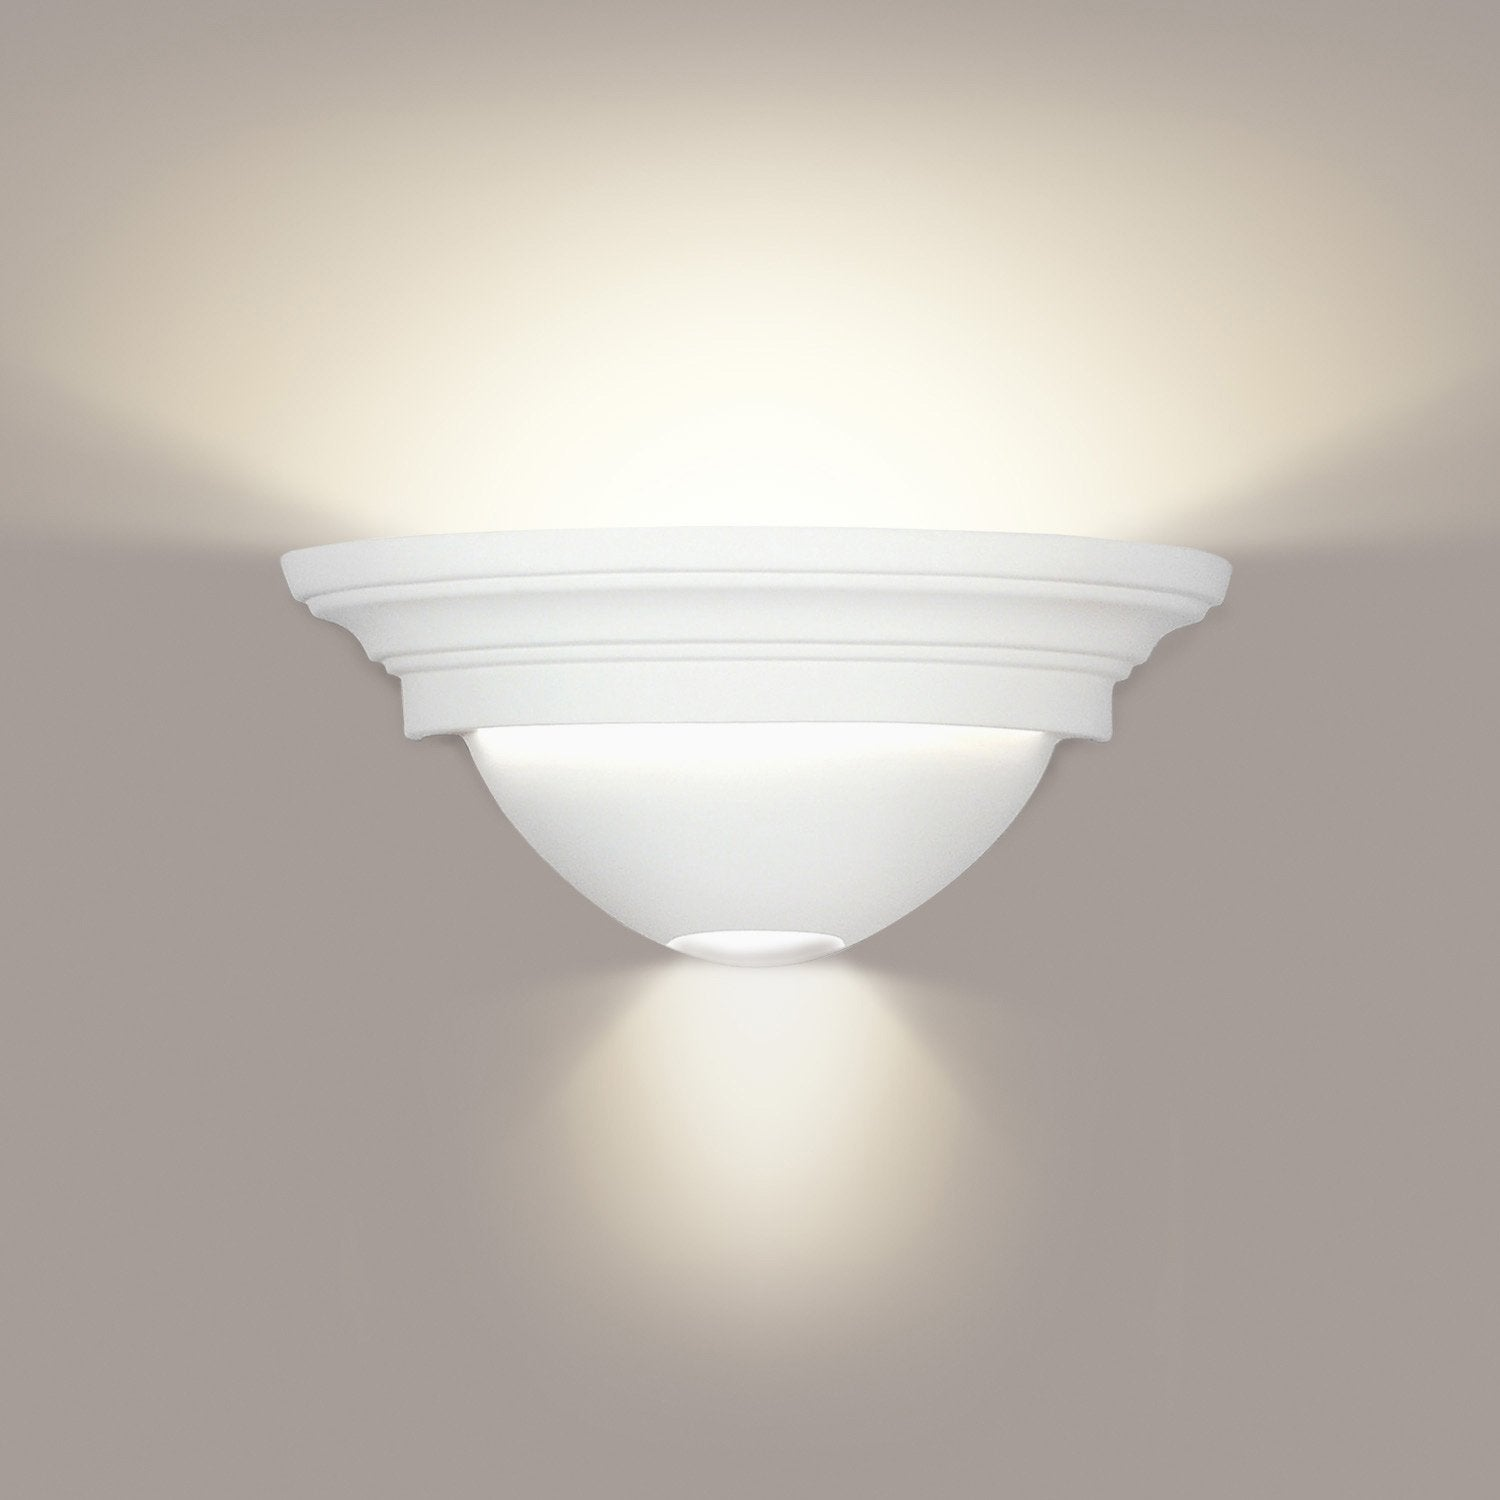 A19 103-LEDGU24-WC Islands of Light Collection Formentera/Ibiza White Crackle Finish Wall Sconce